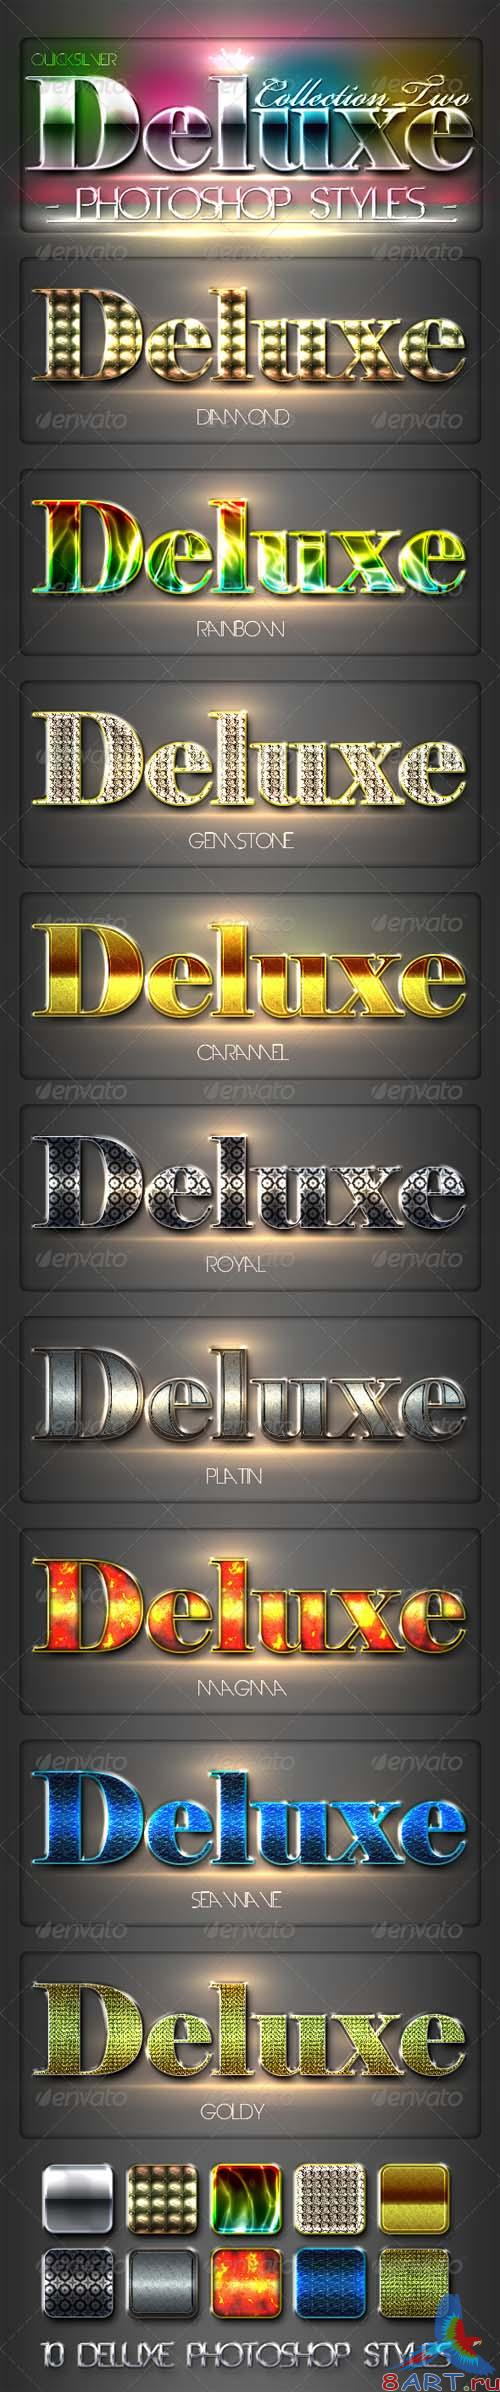 GraphicRiver 10 DeLuxe Photoshop Layer Styles Collection 2 - REUPLOAD